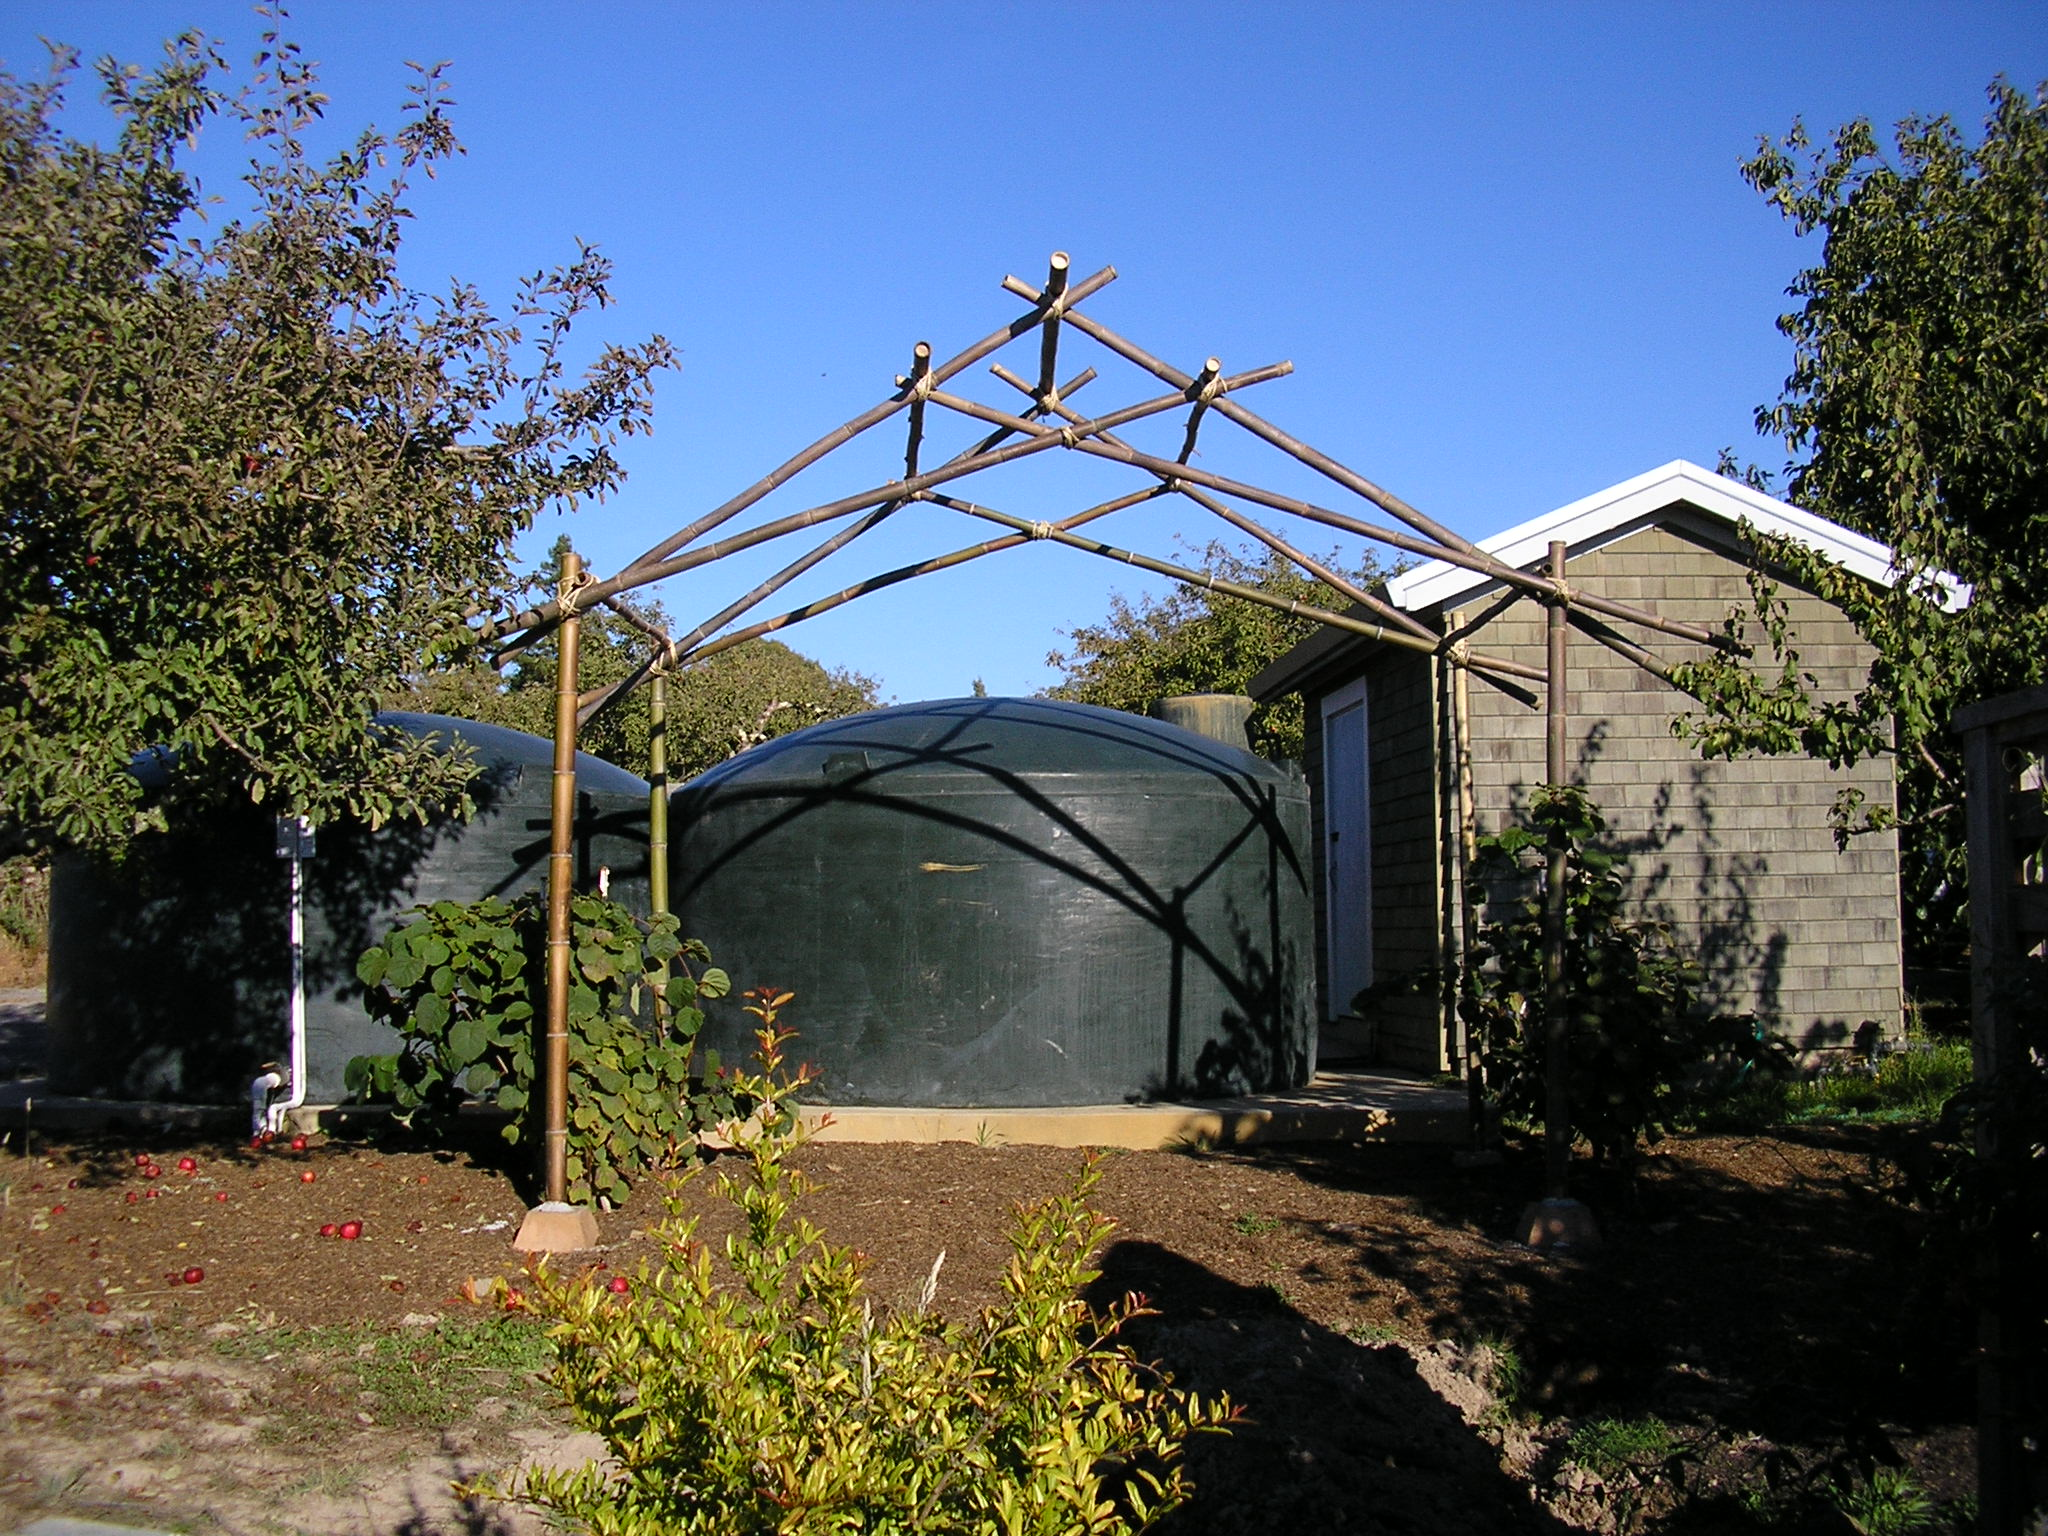 Here is a kiwi arbor built by Sebastian Collet and MML (See link to Seb's site on the right).